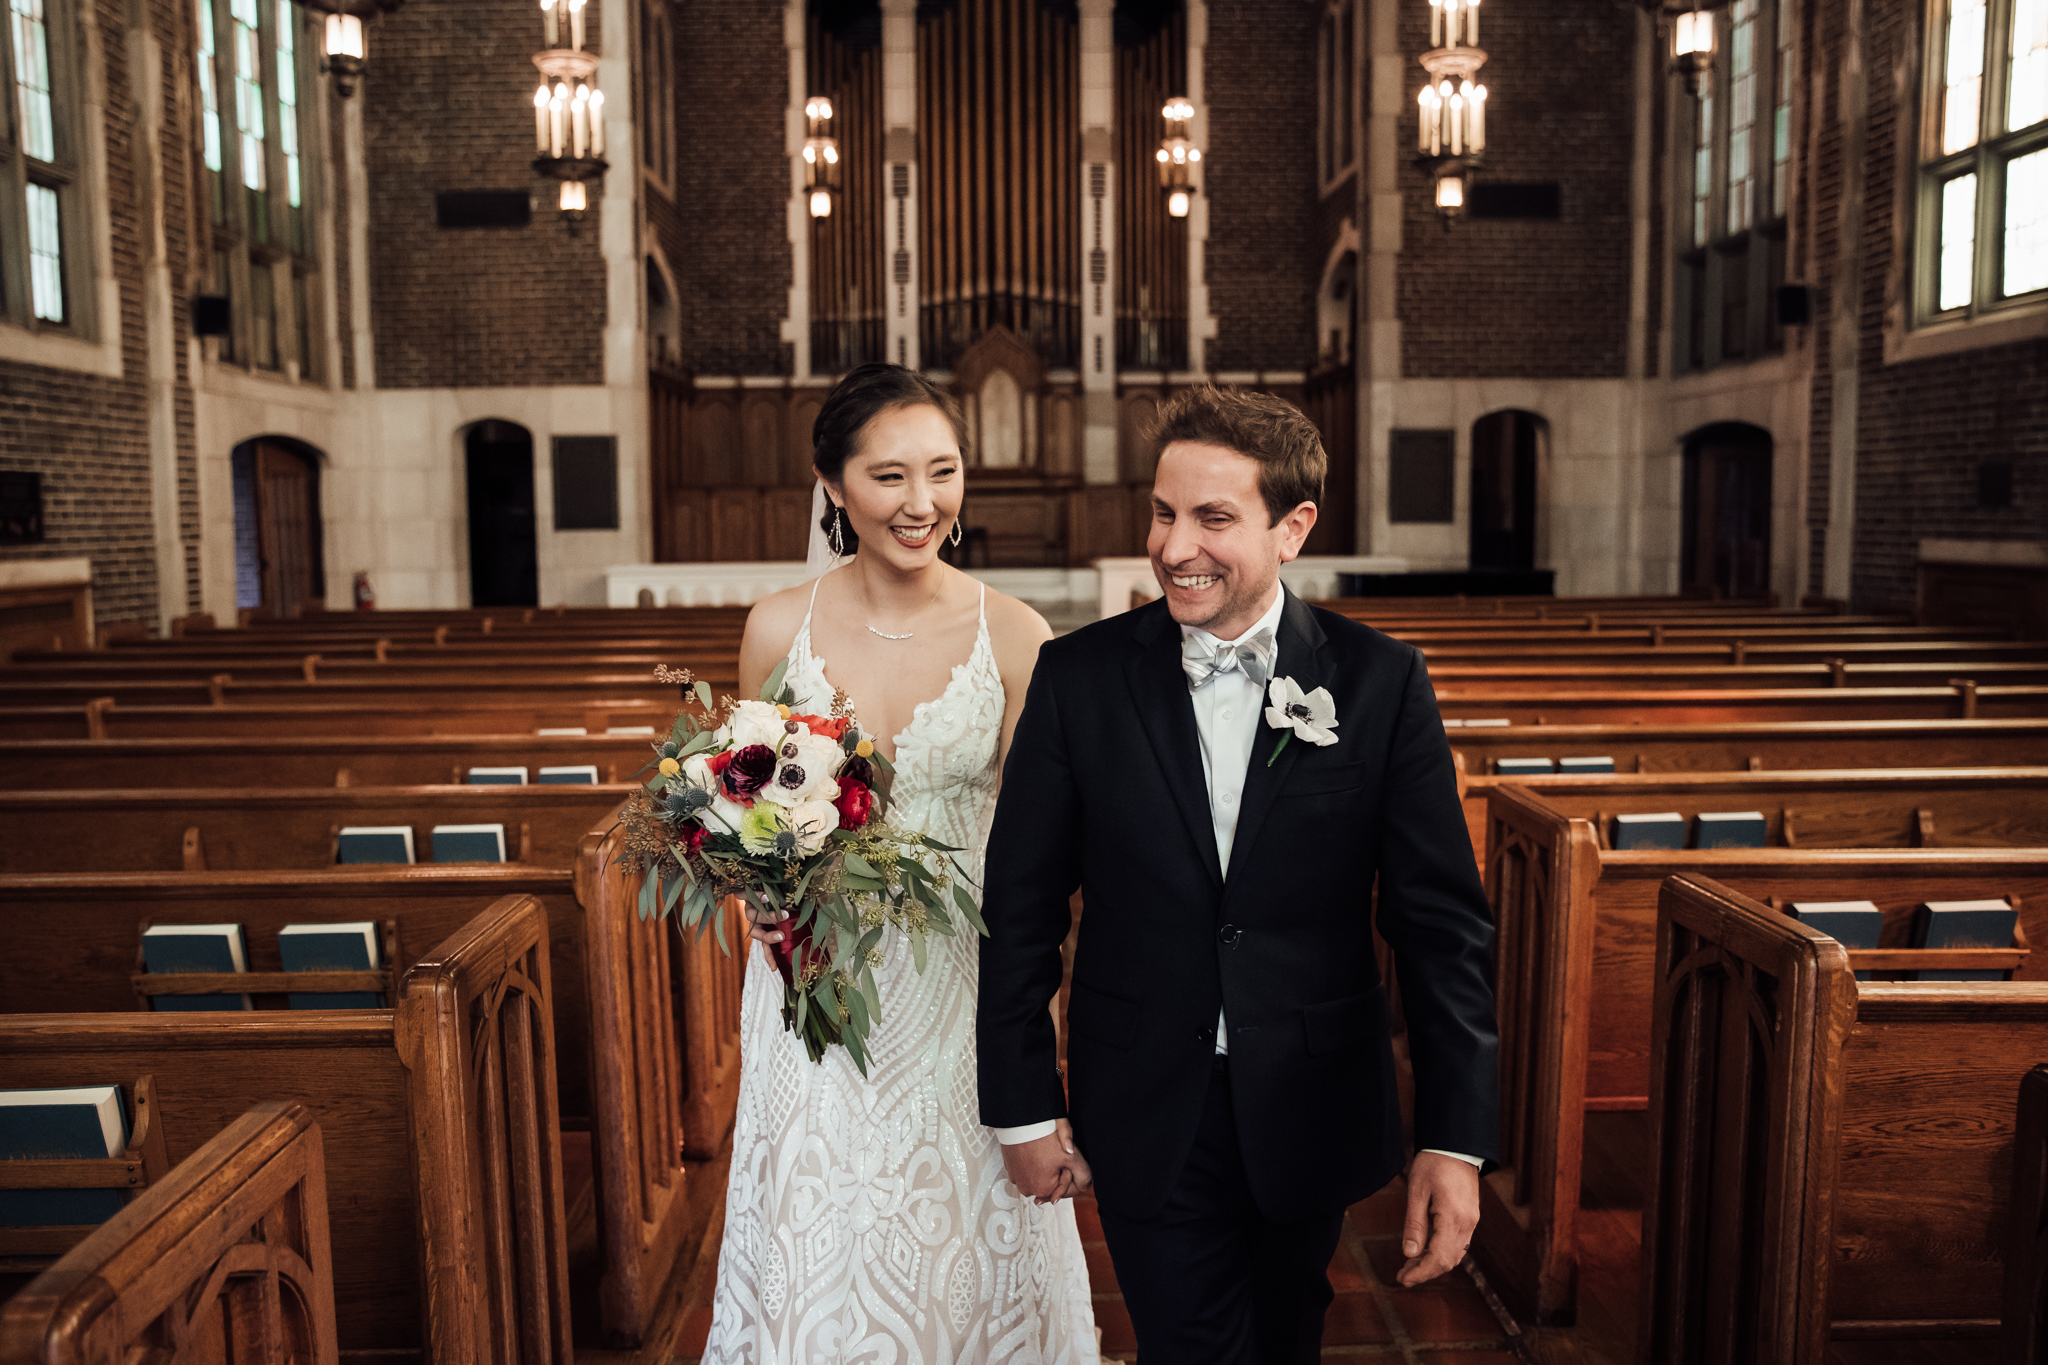 chattanooga-wedding-photographers-thewarmtharoundyou-waterhouse-pavilion-patten-chapel-wedding-sam-dusty (117 of 269).jpg